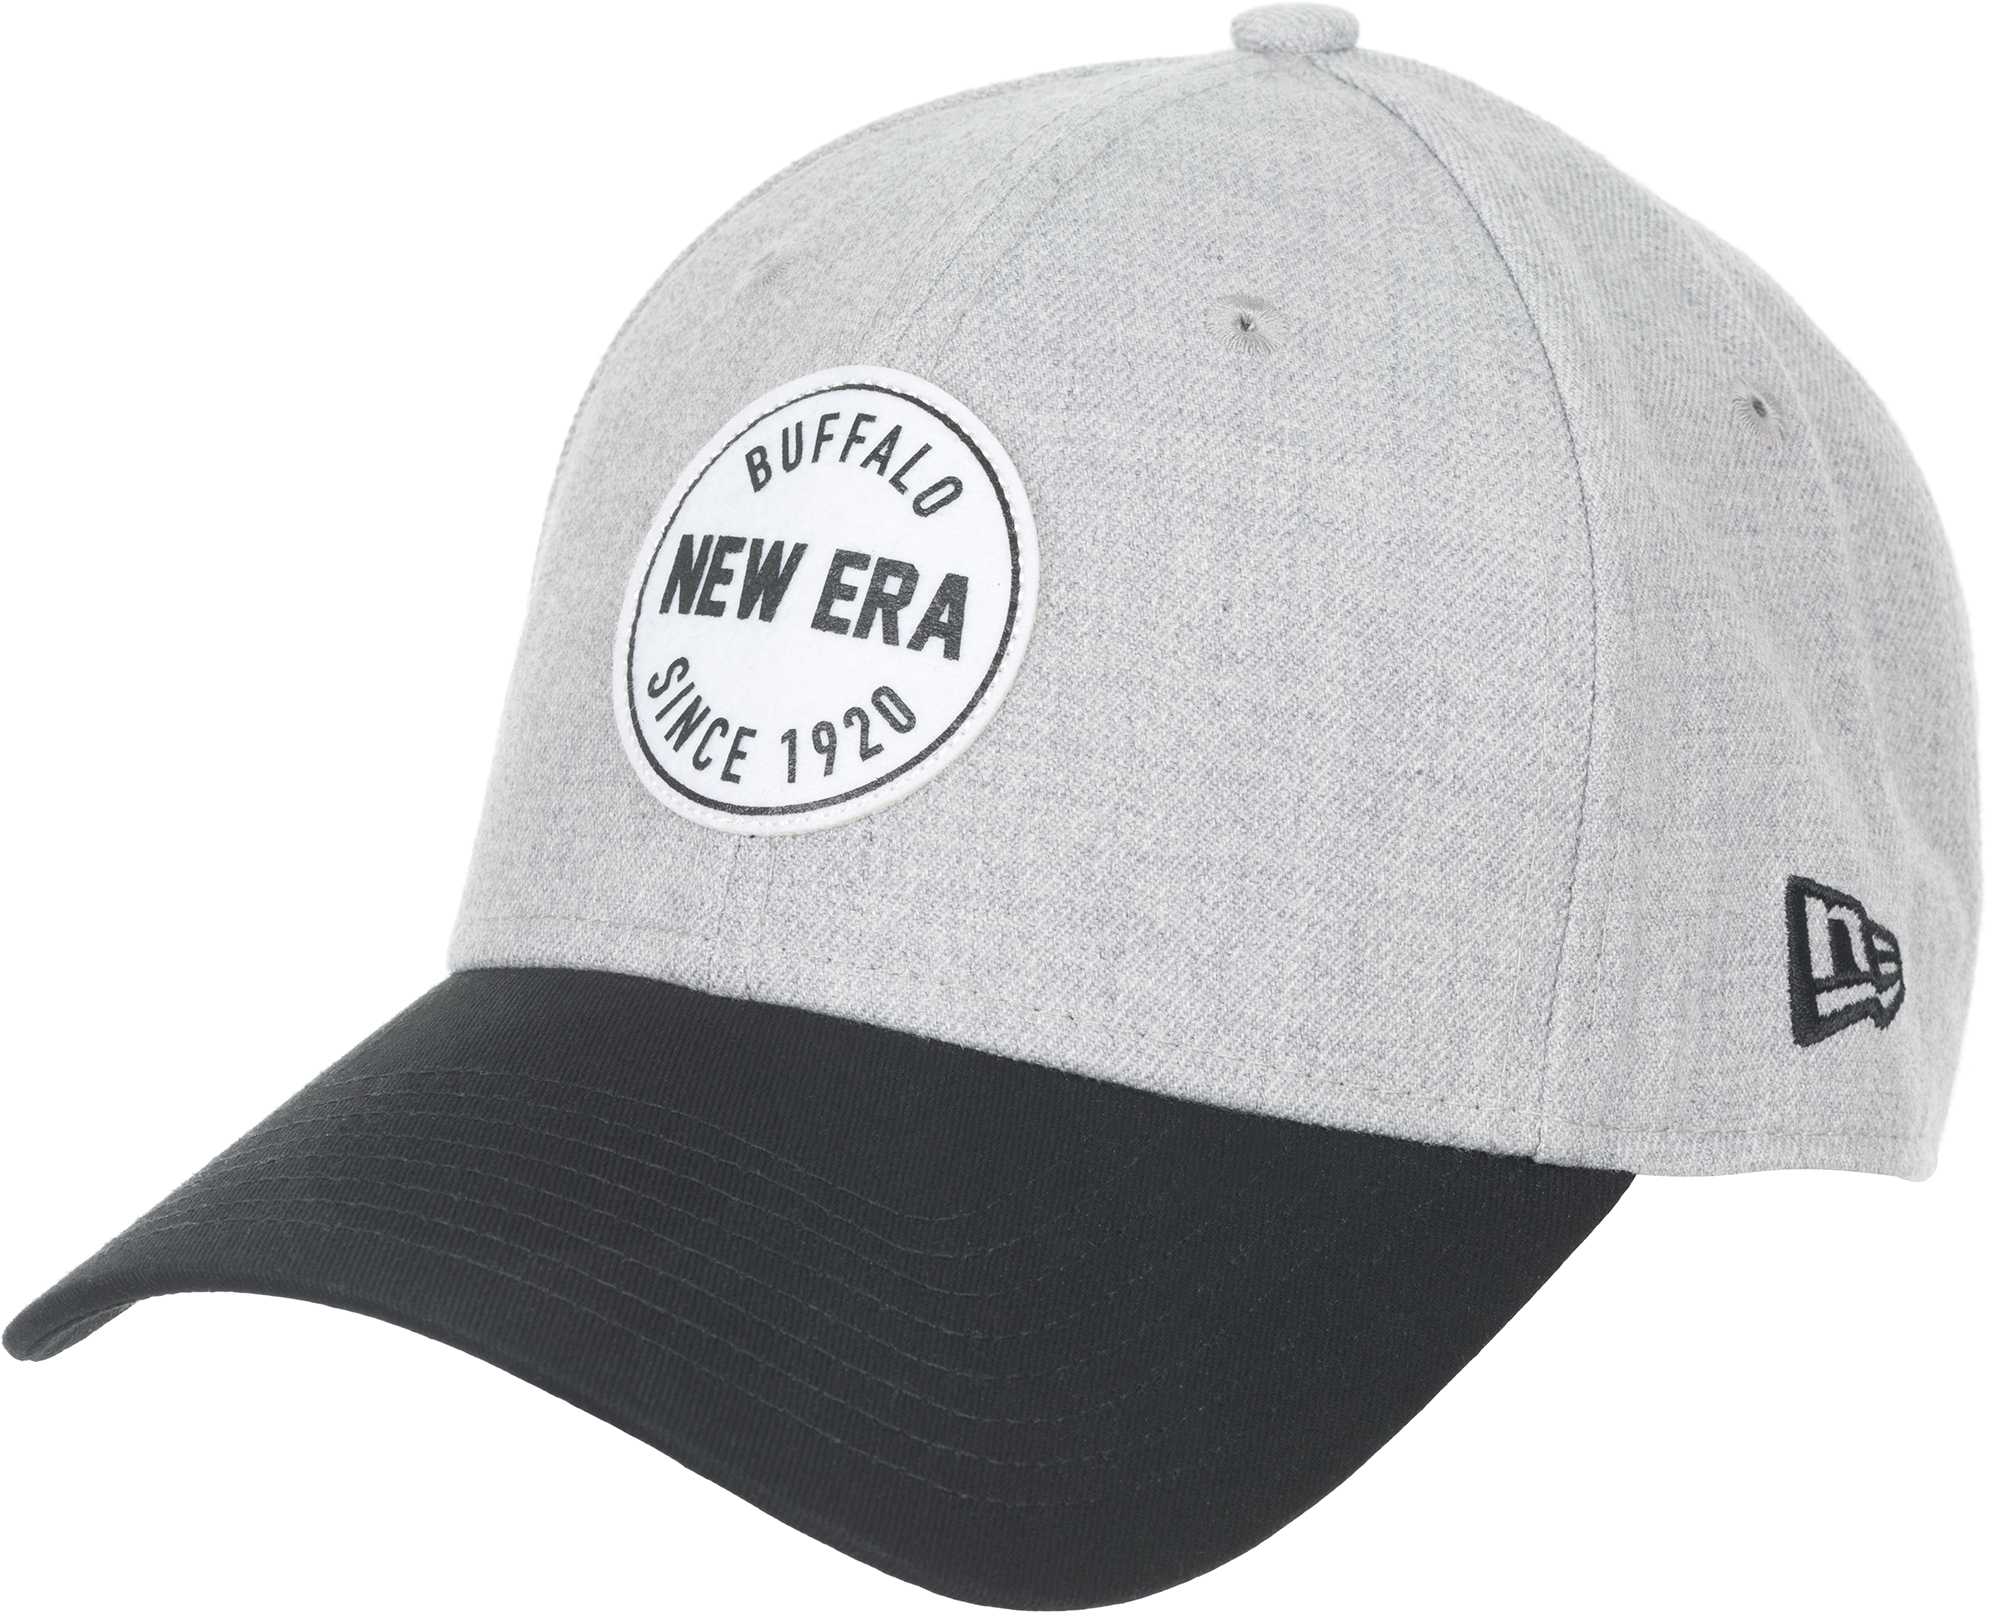 New Era Бейсболка New Era 219 Heather Crown Patch 9Forty new era бейсболка мужская new era